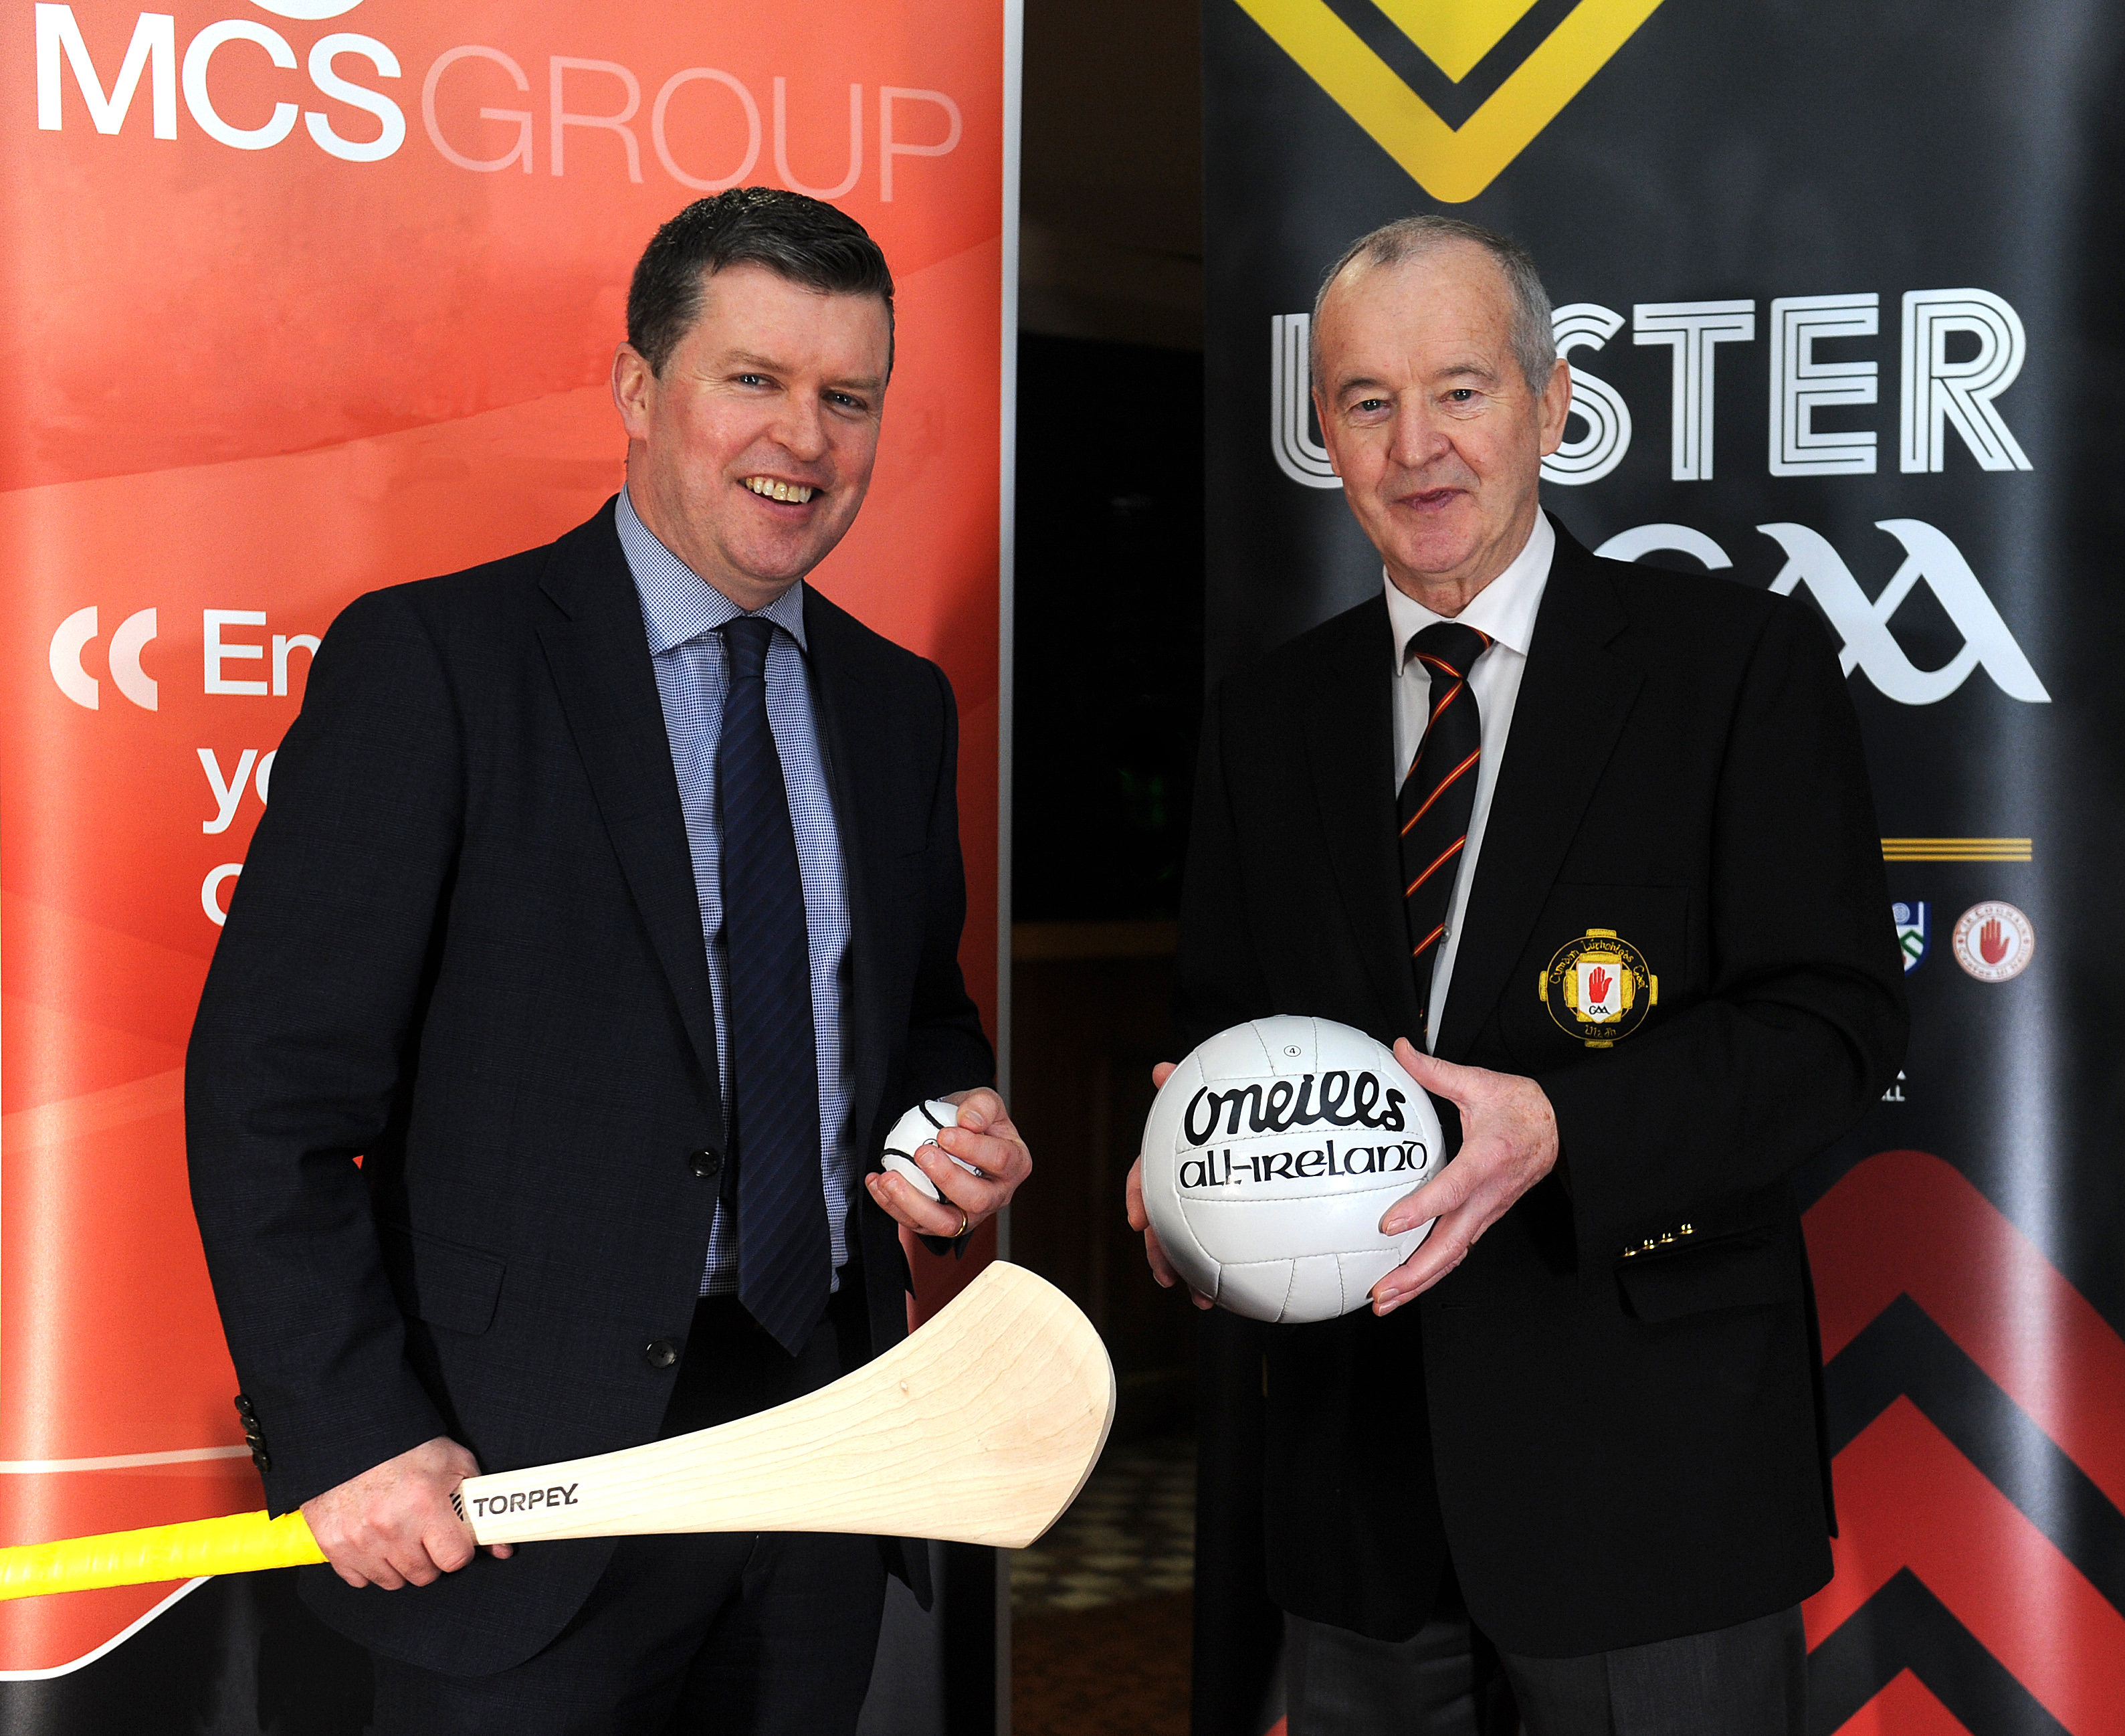 Ulster GAA confirm MCS Group as a Corporate Partner